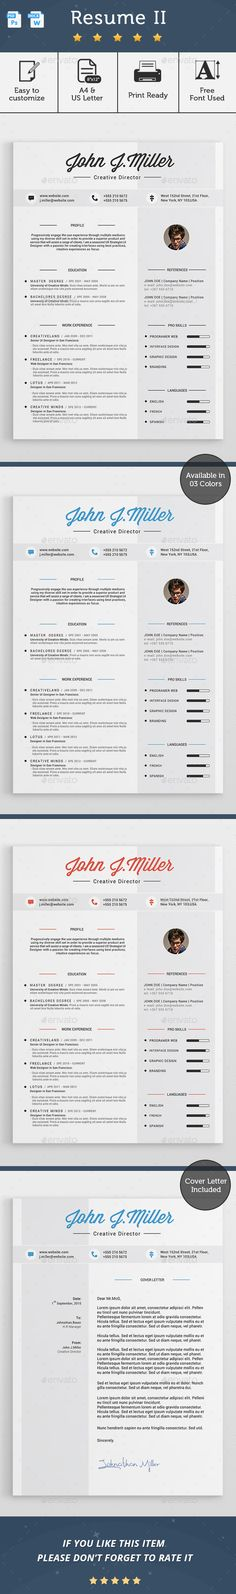 Best Resume Template - CV Template - Free Cover Letter - MS Word - contemporary resume template free